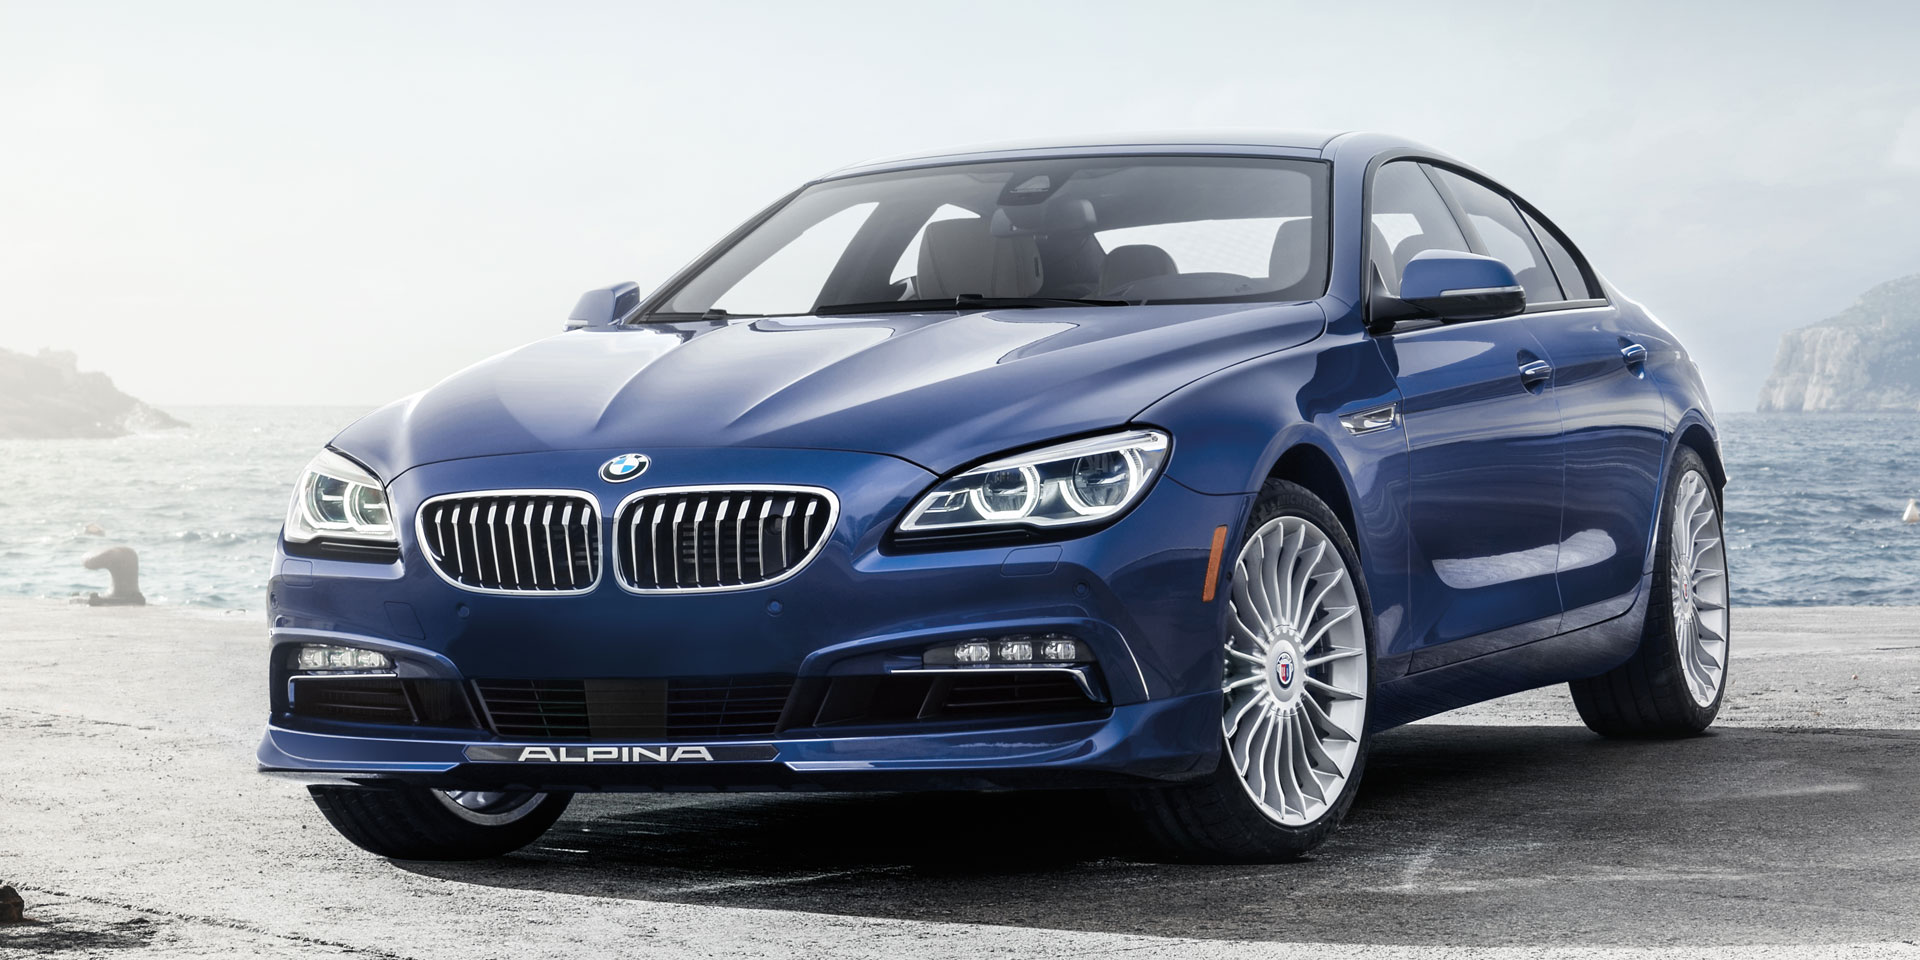 Used Cars For Sale New Cars For Sale Car Dealers Cars Chicago - 2016 bmw models